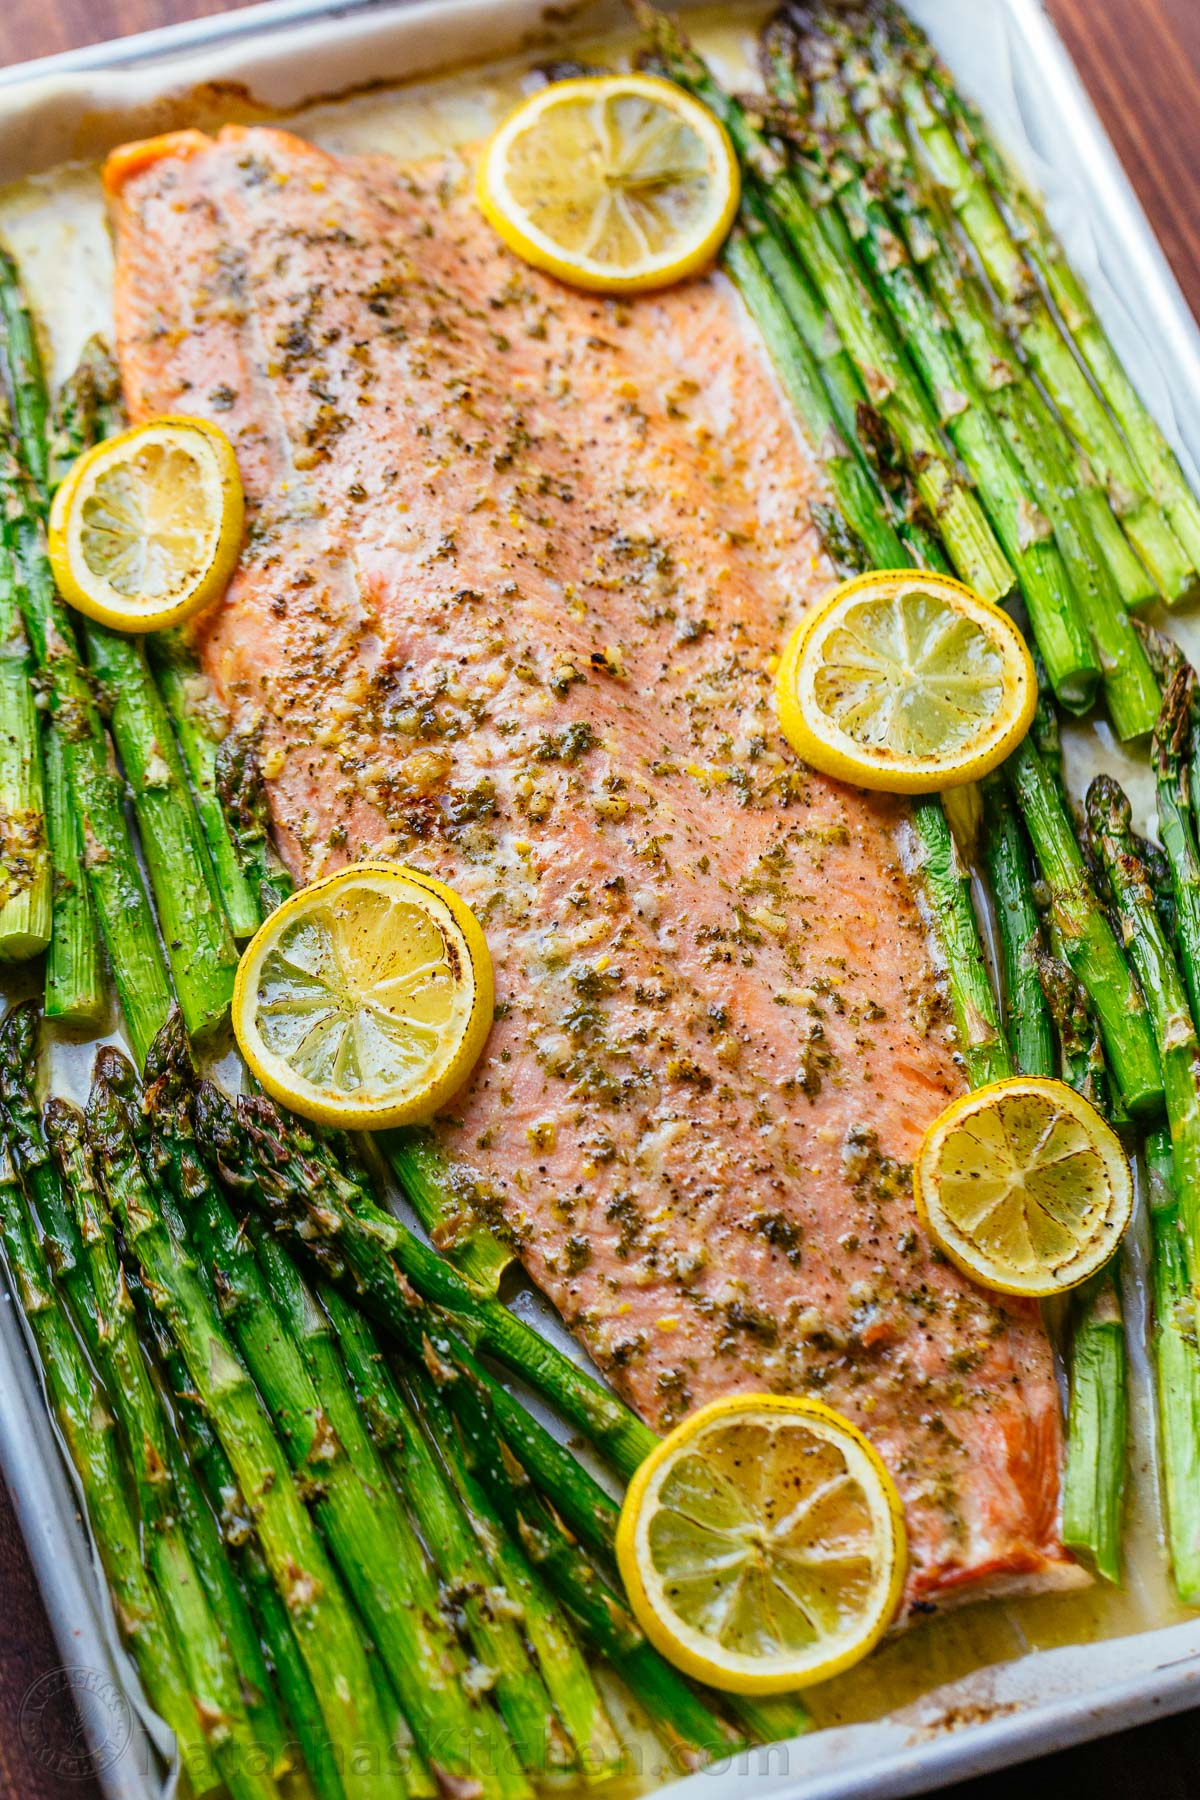 Salmon and Asparagus with Garlic Herb Butter